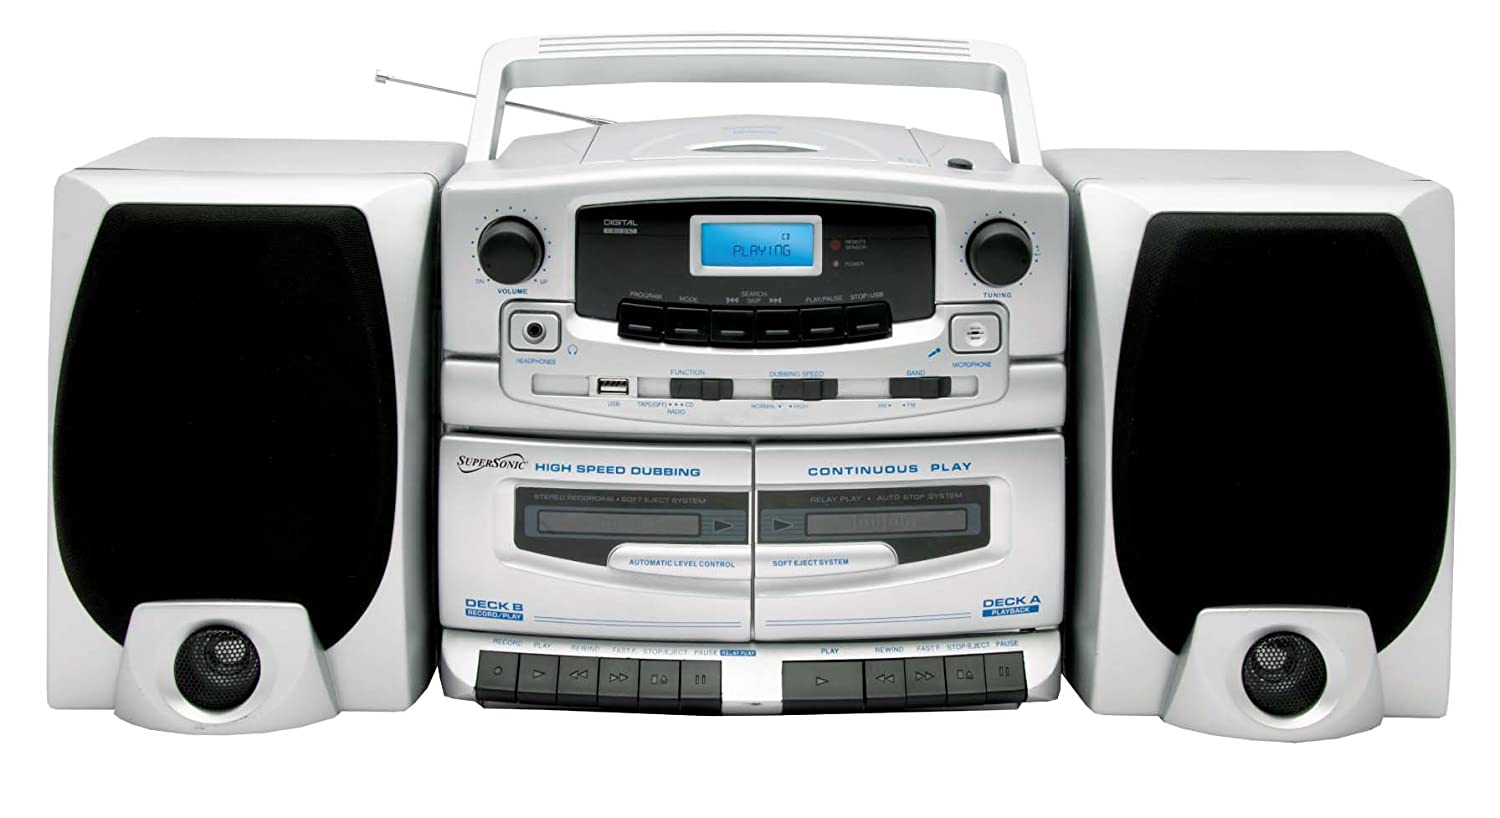 portable mp3 cd player dual cassette recorder am fm radio detachable speakers 639131020207 ebay. Black Bedroom Furniture Sets. Home Design Ideas